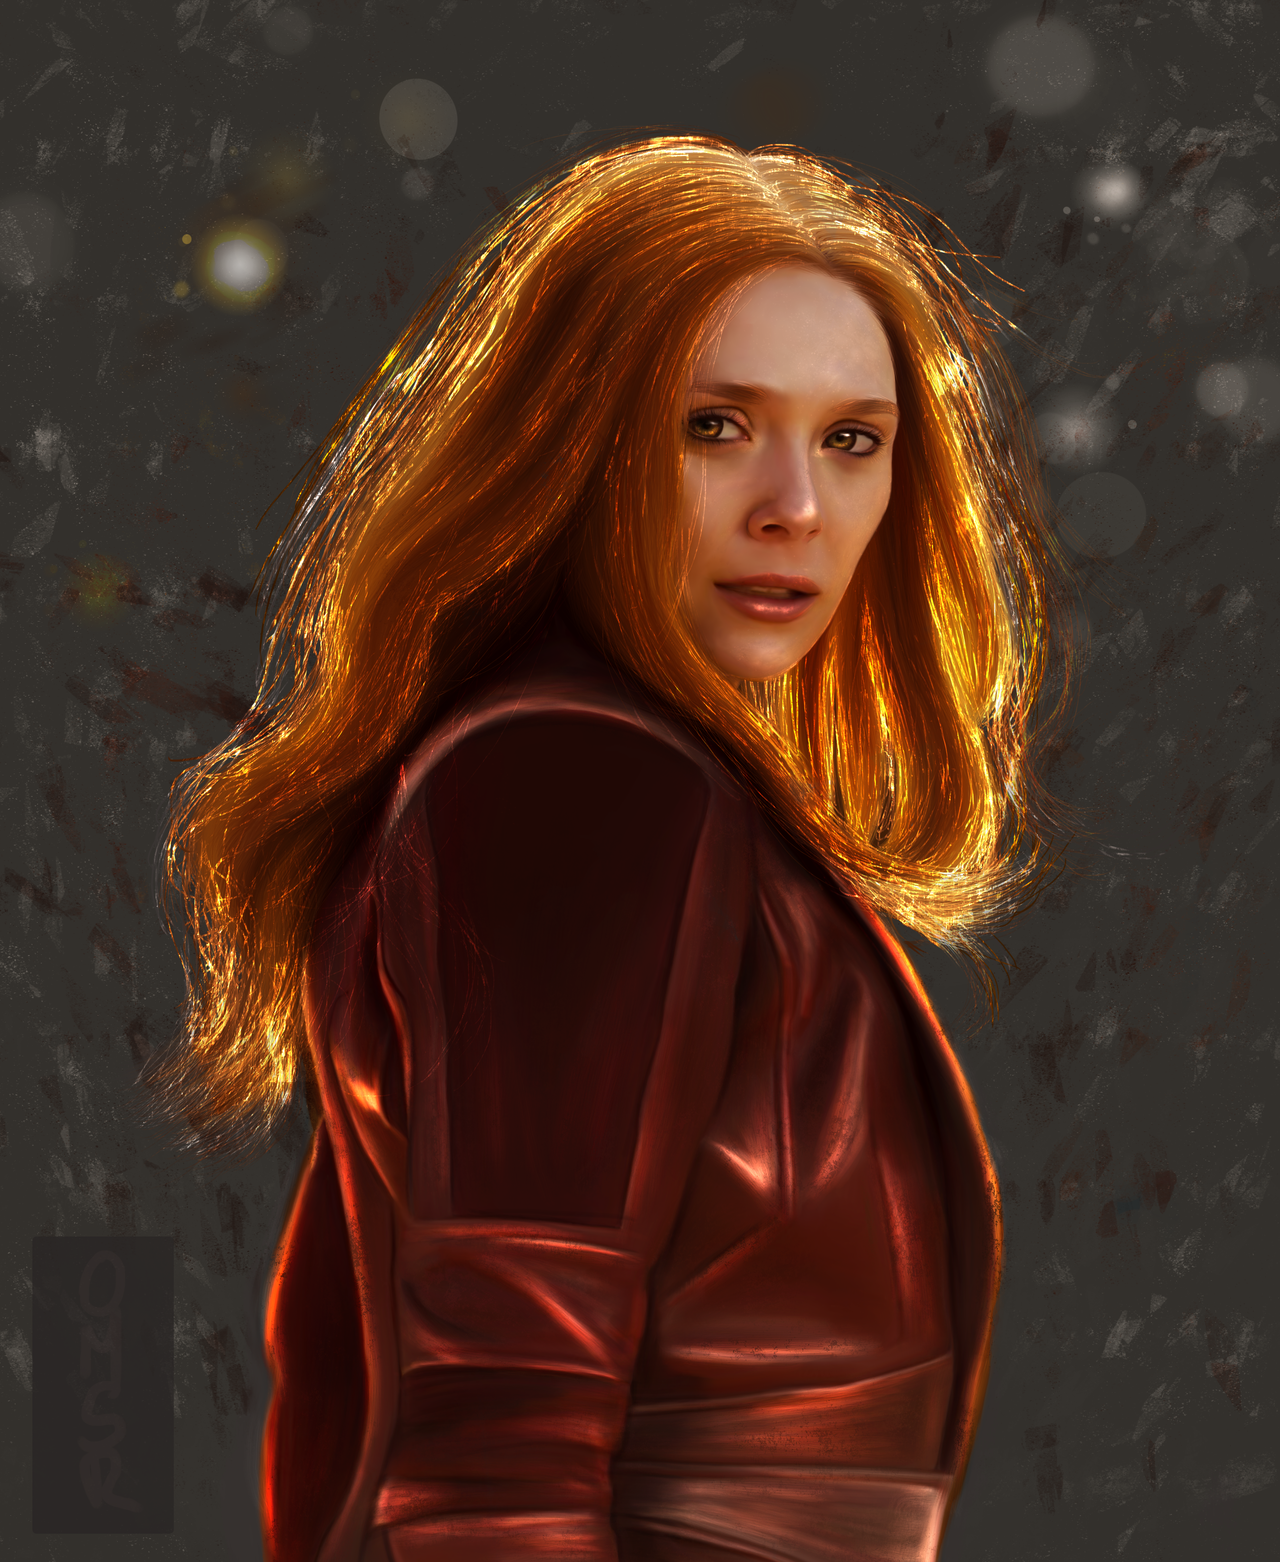 Enouementonism Wanda Maximoff Pscs6 8h Scarlet Witch Scarlet Witch Marvel Elizabeth Olsen Scarlet Witch